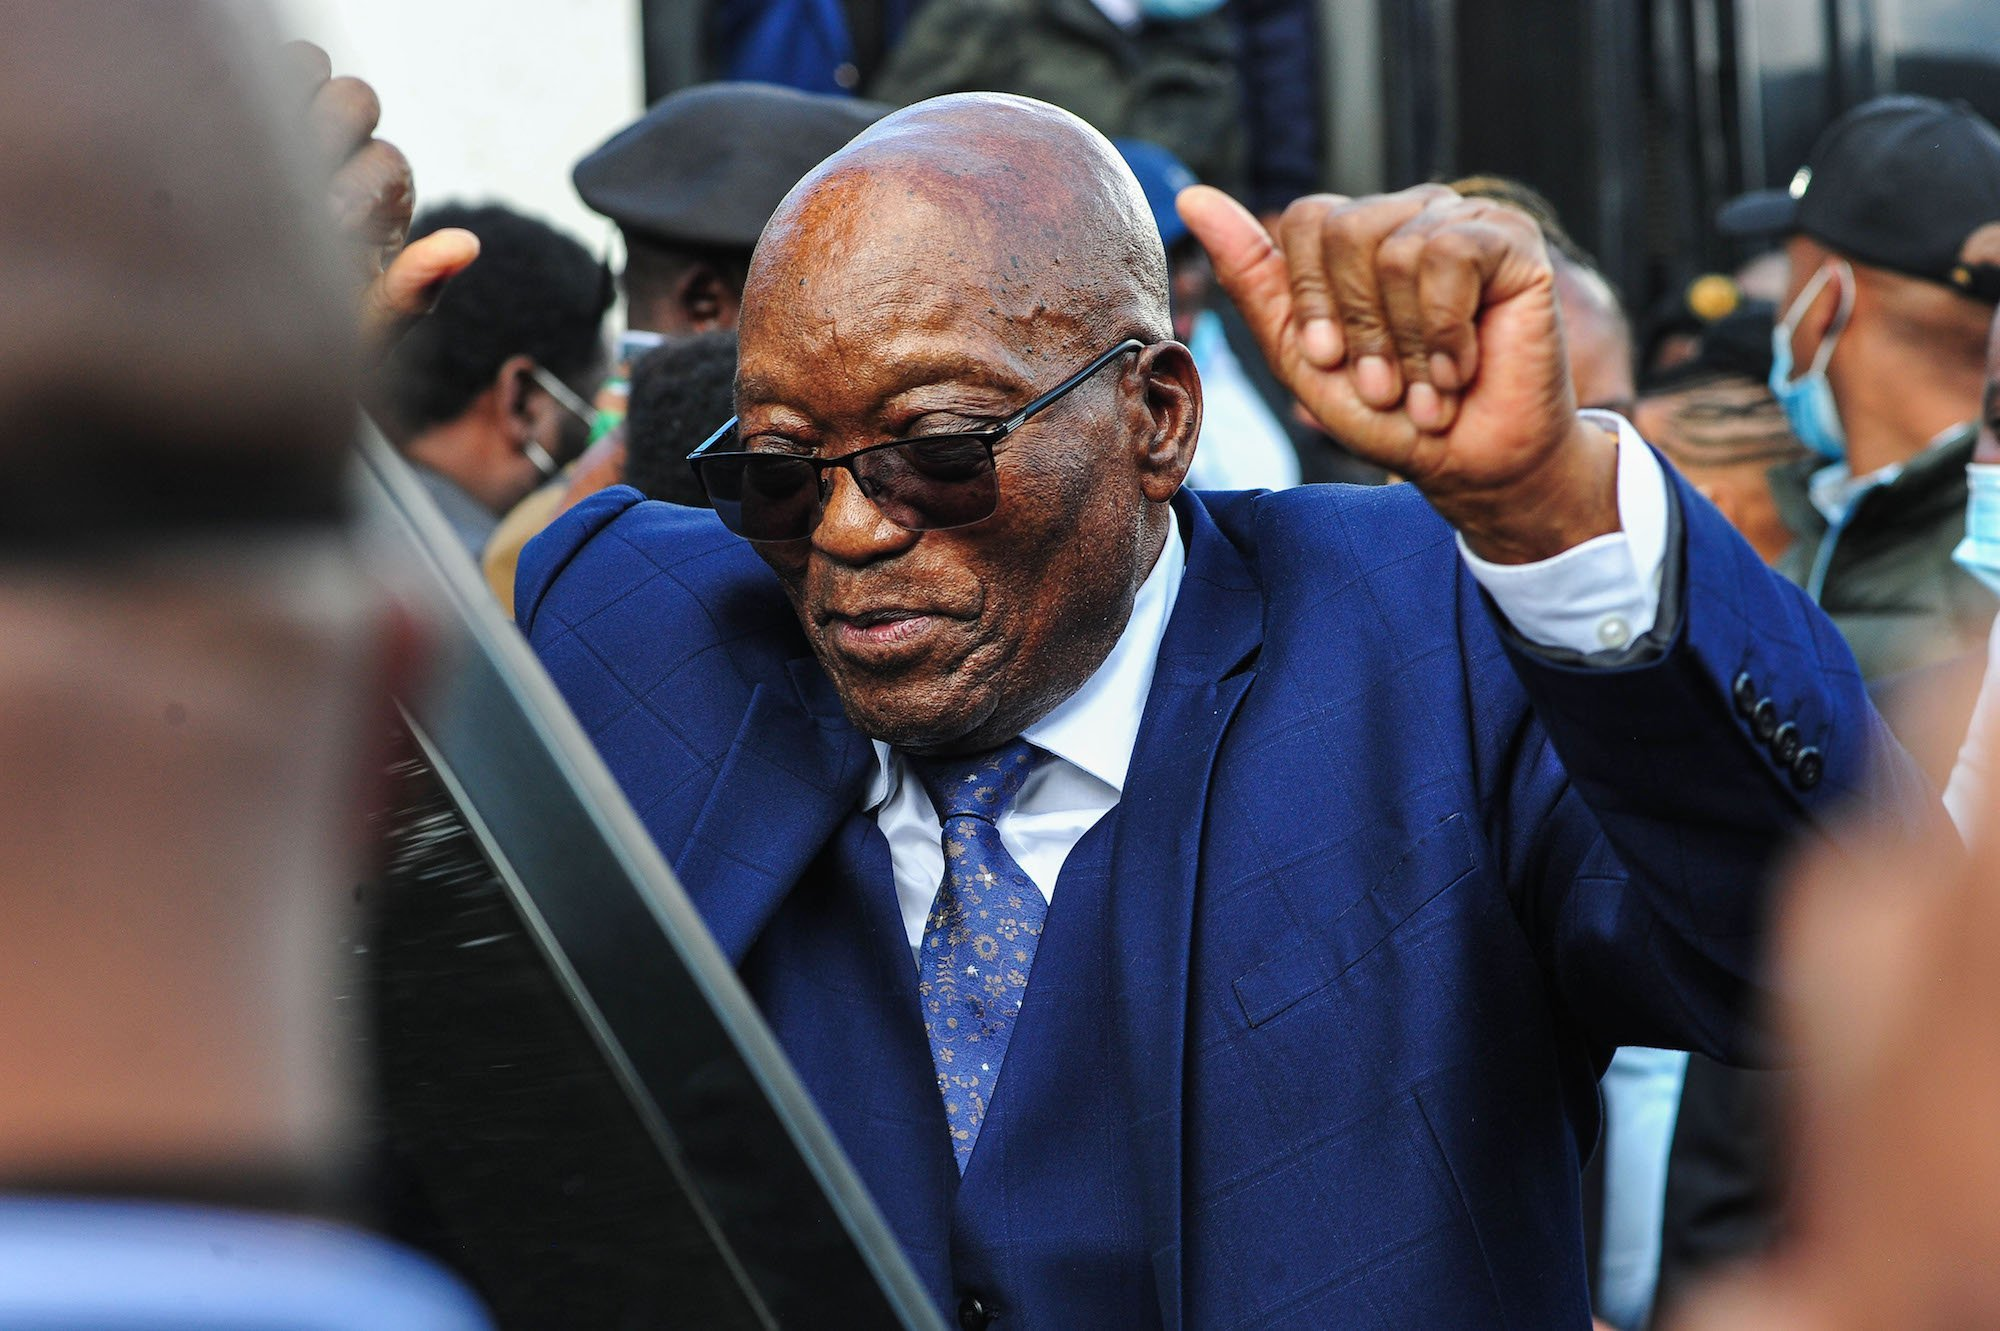 Zuma, surrounded by cops, should be the easiest man in the world to arrest